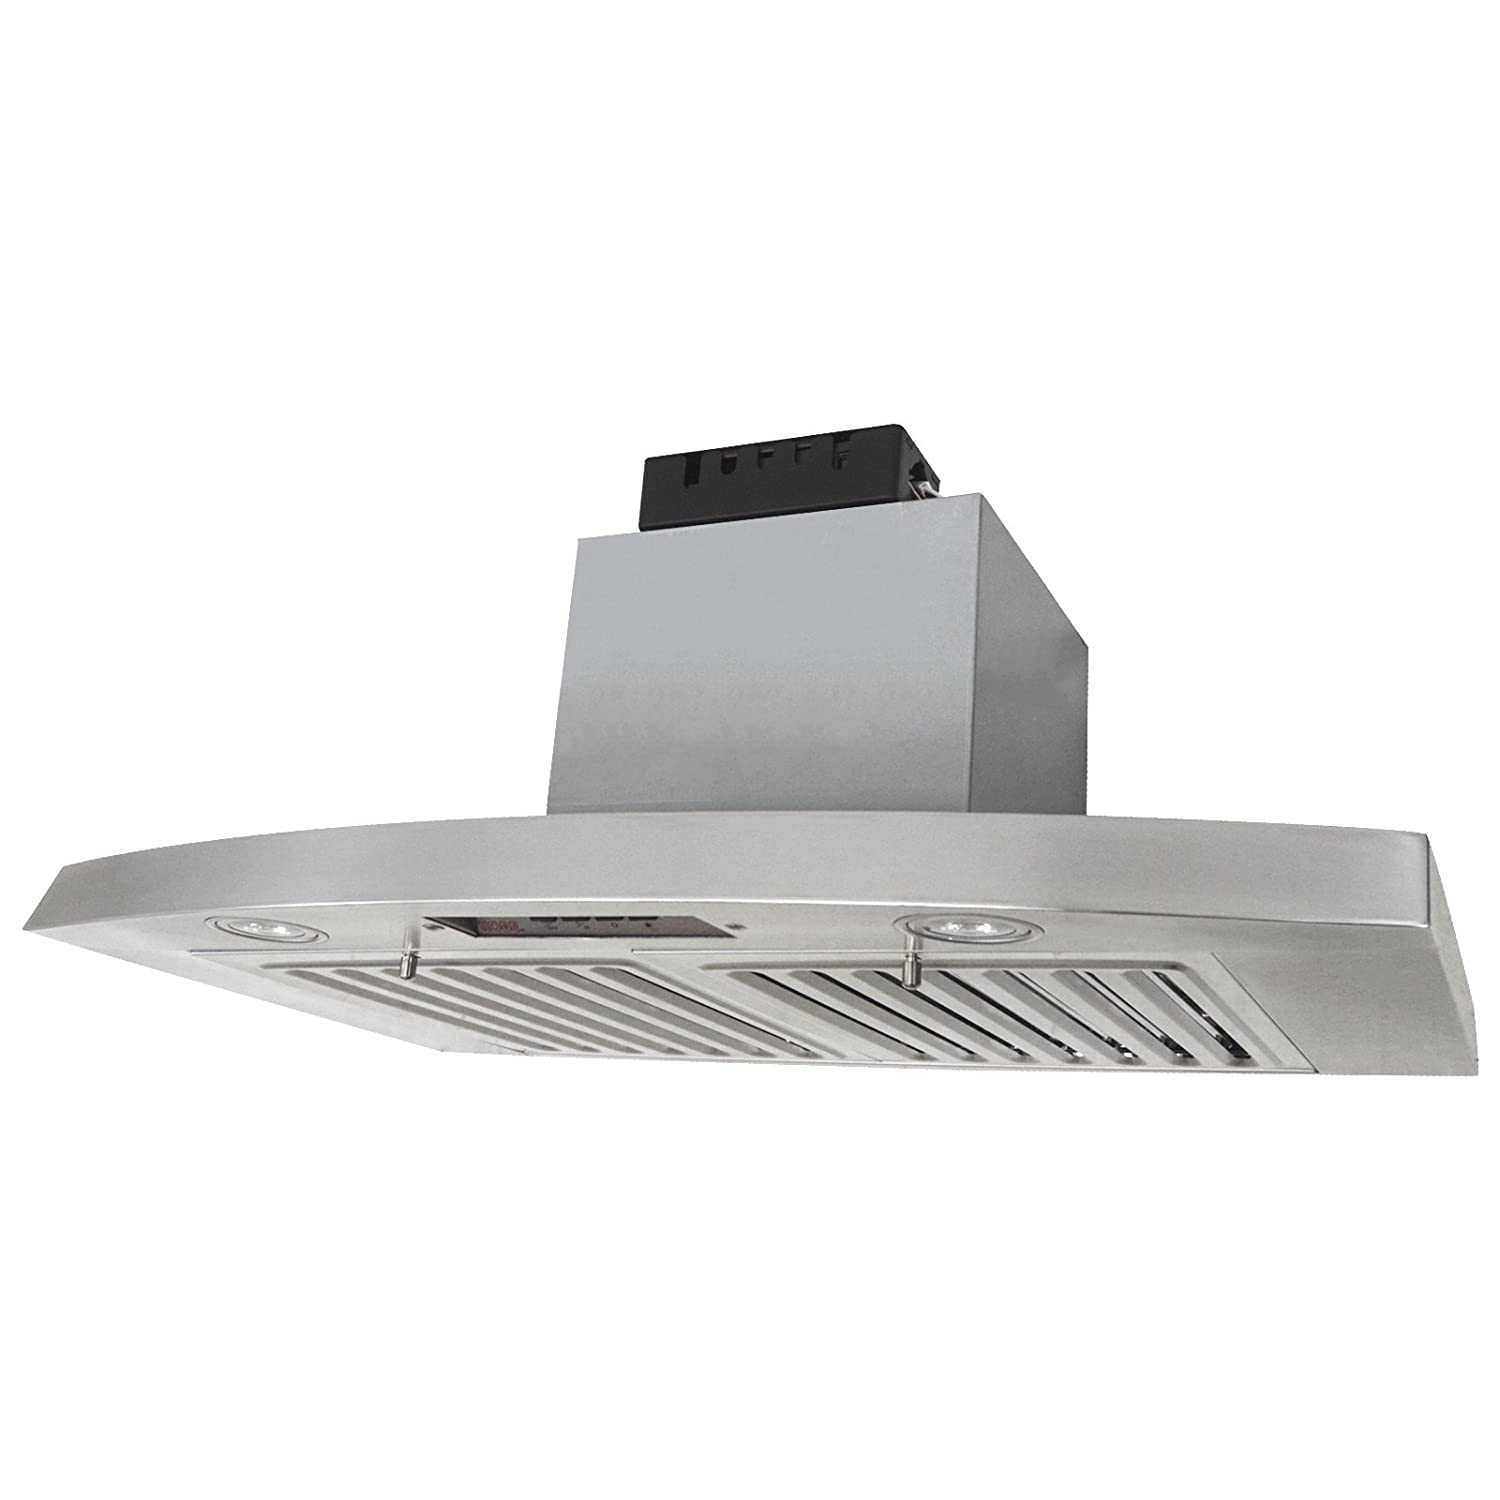 KOBE RAX2830SQB-2 Brillia 30-inch Under Cabinet Range Hood, 3-Speed, 650 CFM, LED Lights, Baffle Filters Kobe Range Hoods